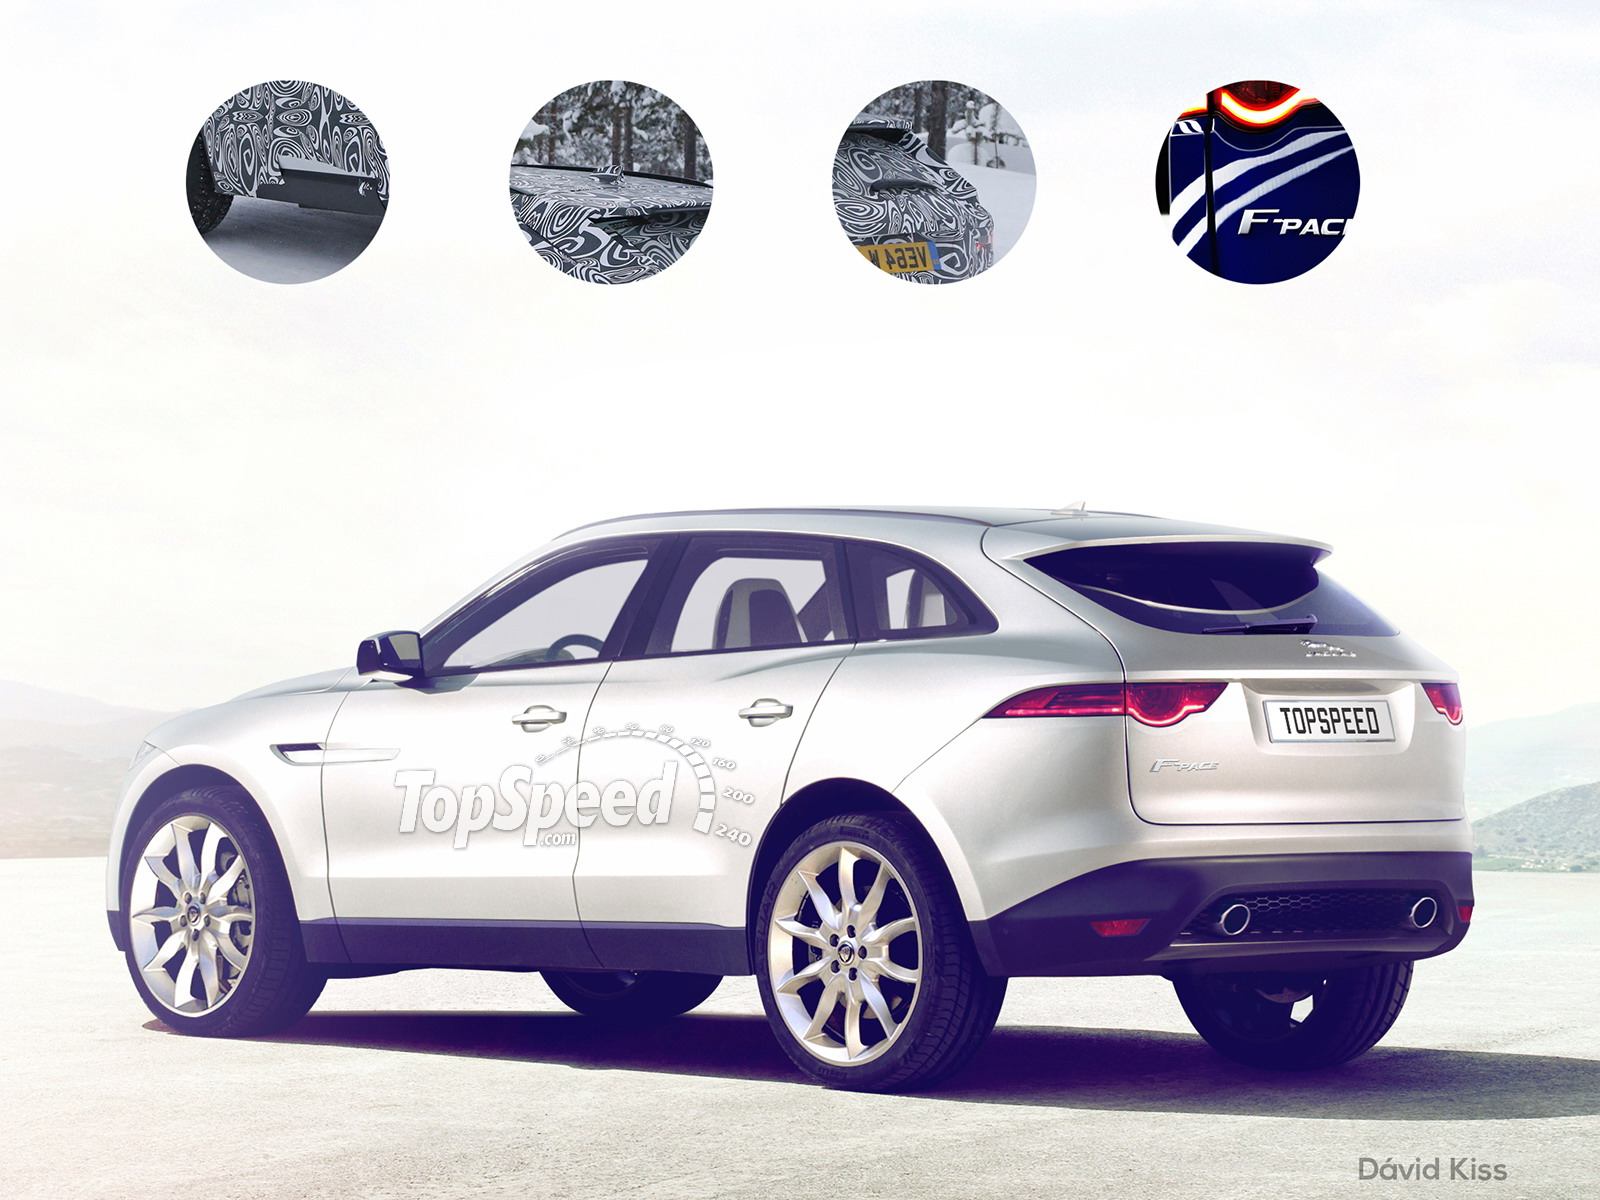 Jaguar May Have Two More Crossovers Hitting The Market By 2020. These  Will Flank Upcoming F-Pace In Size \u2013 One Smaller And Larger. R